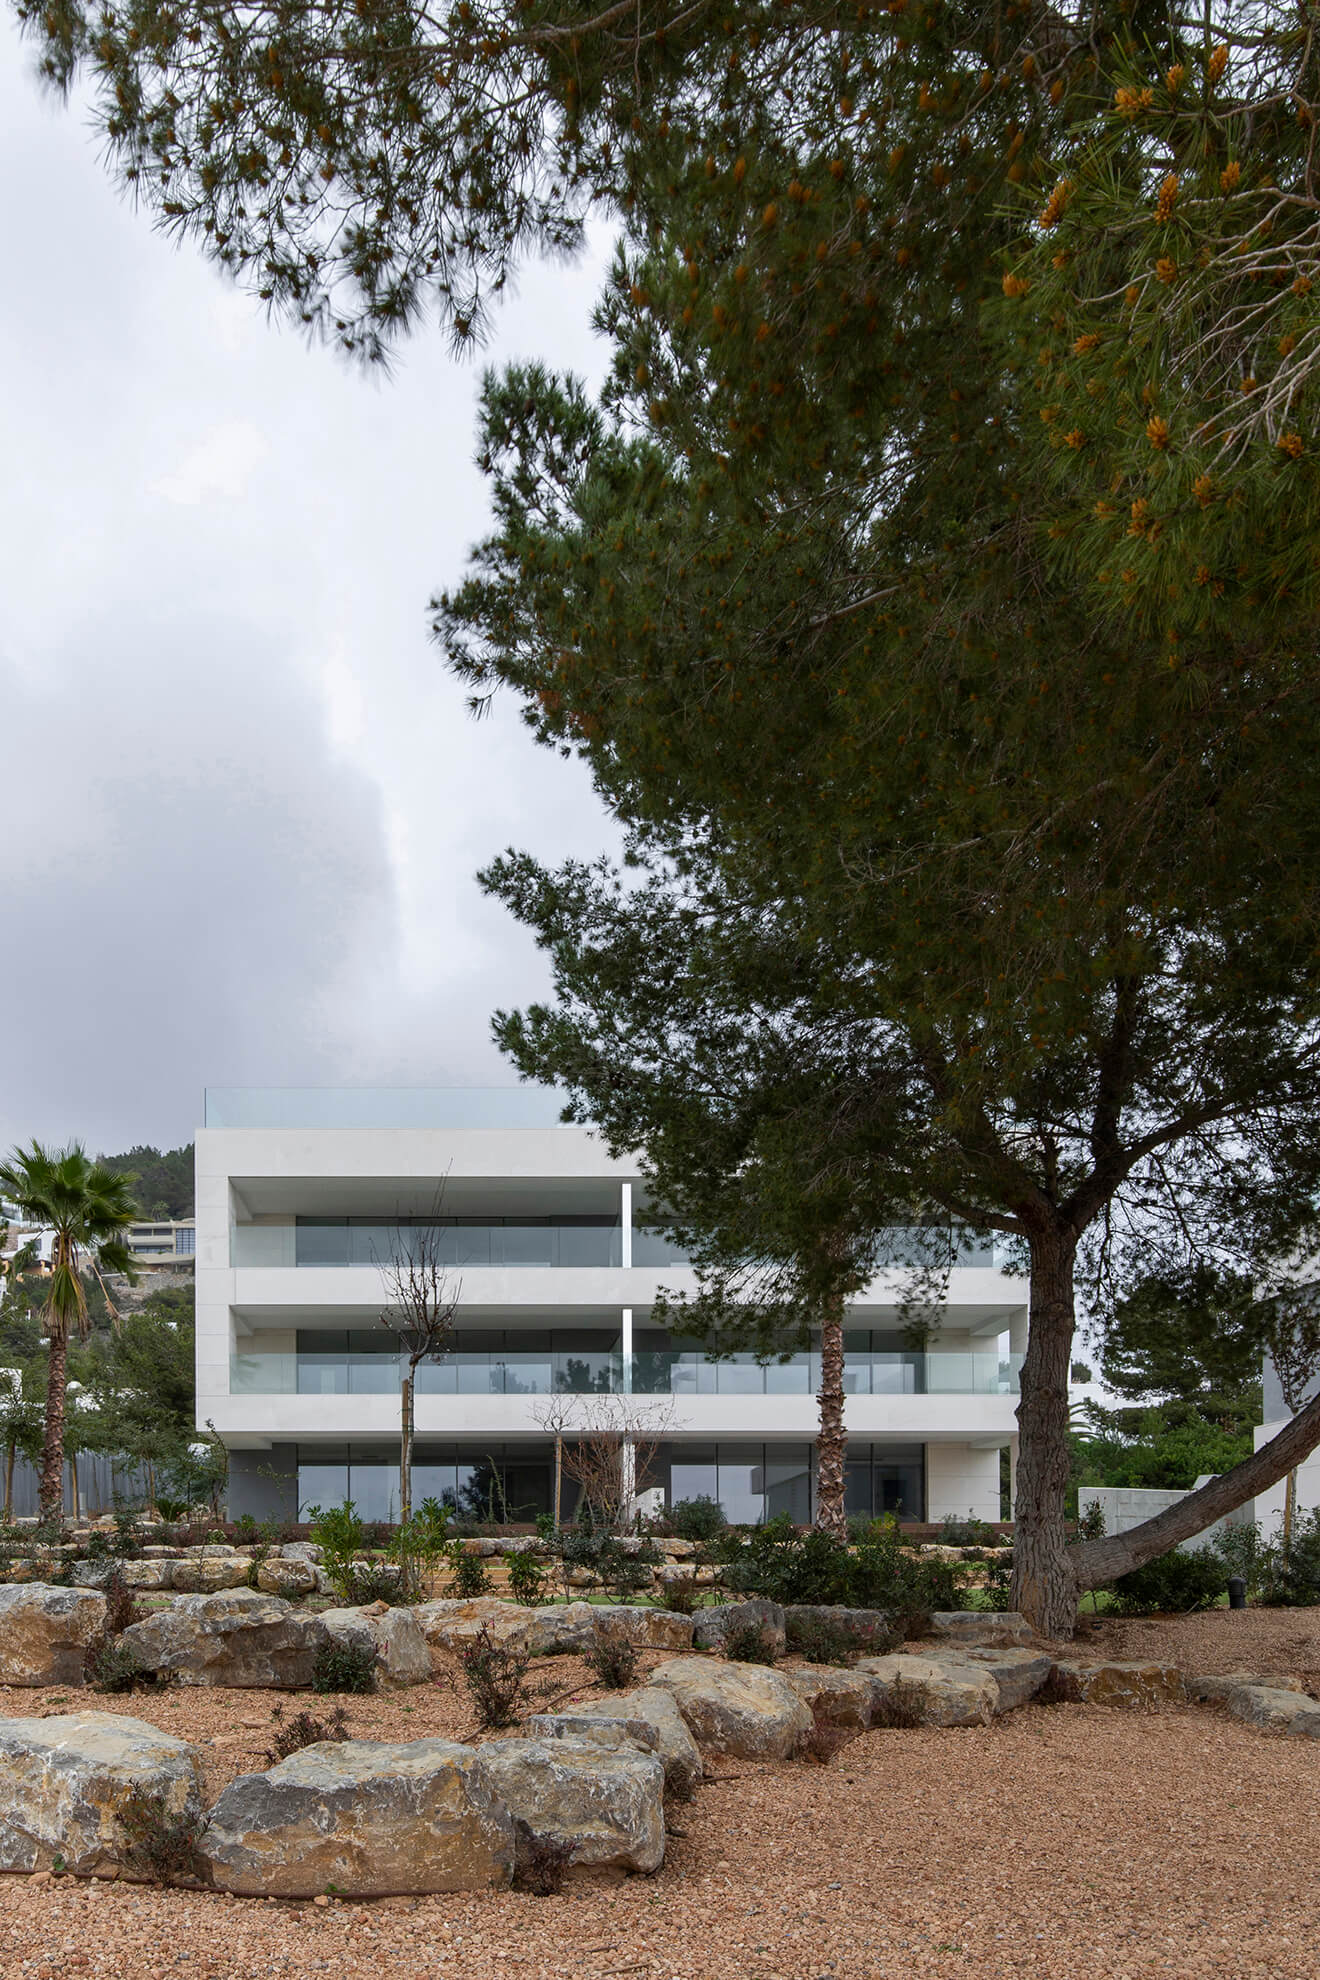 Another view of the facade of one of the houses of the Talamanca residential II with a garden and trees